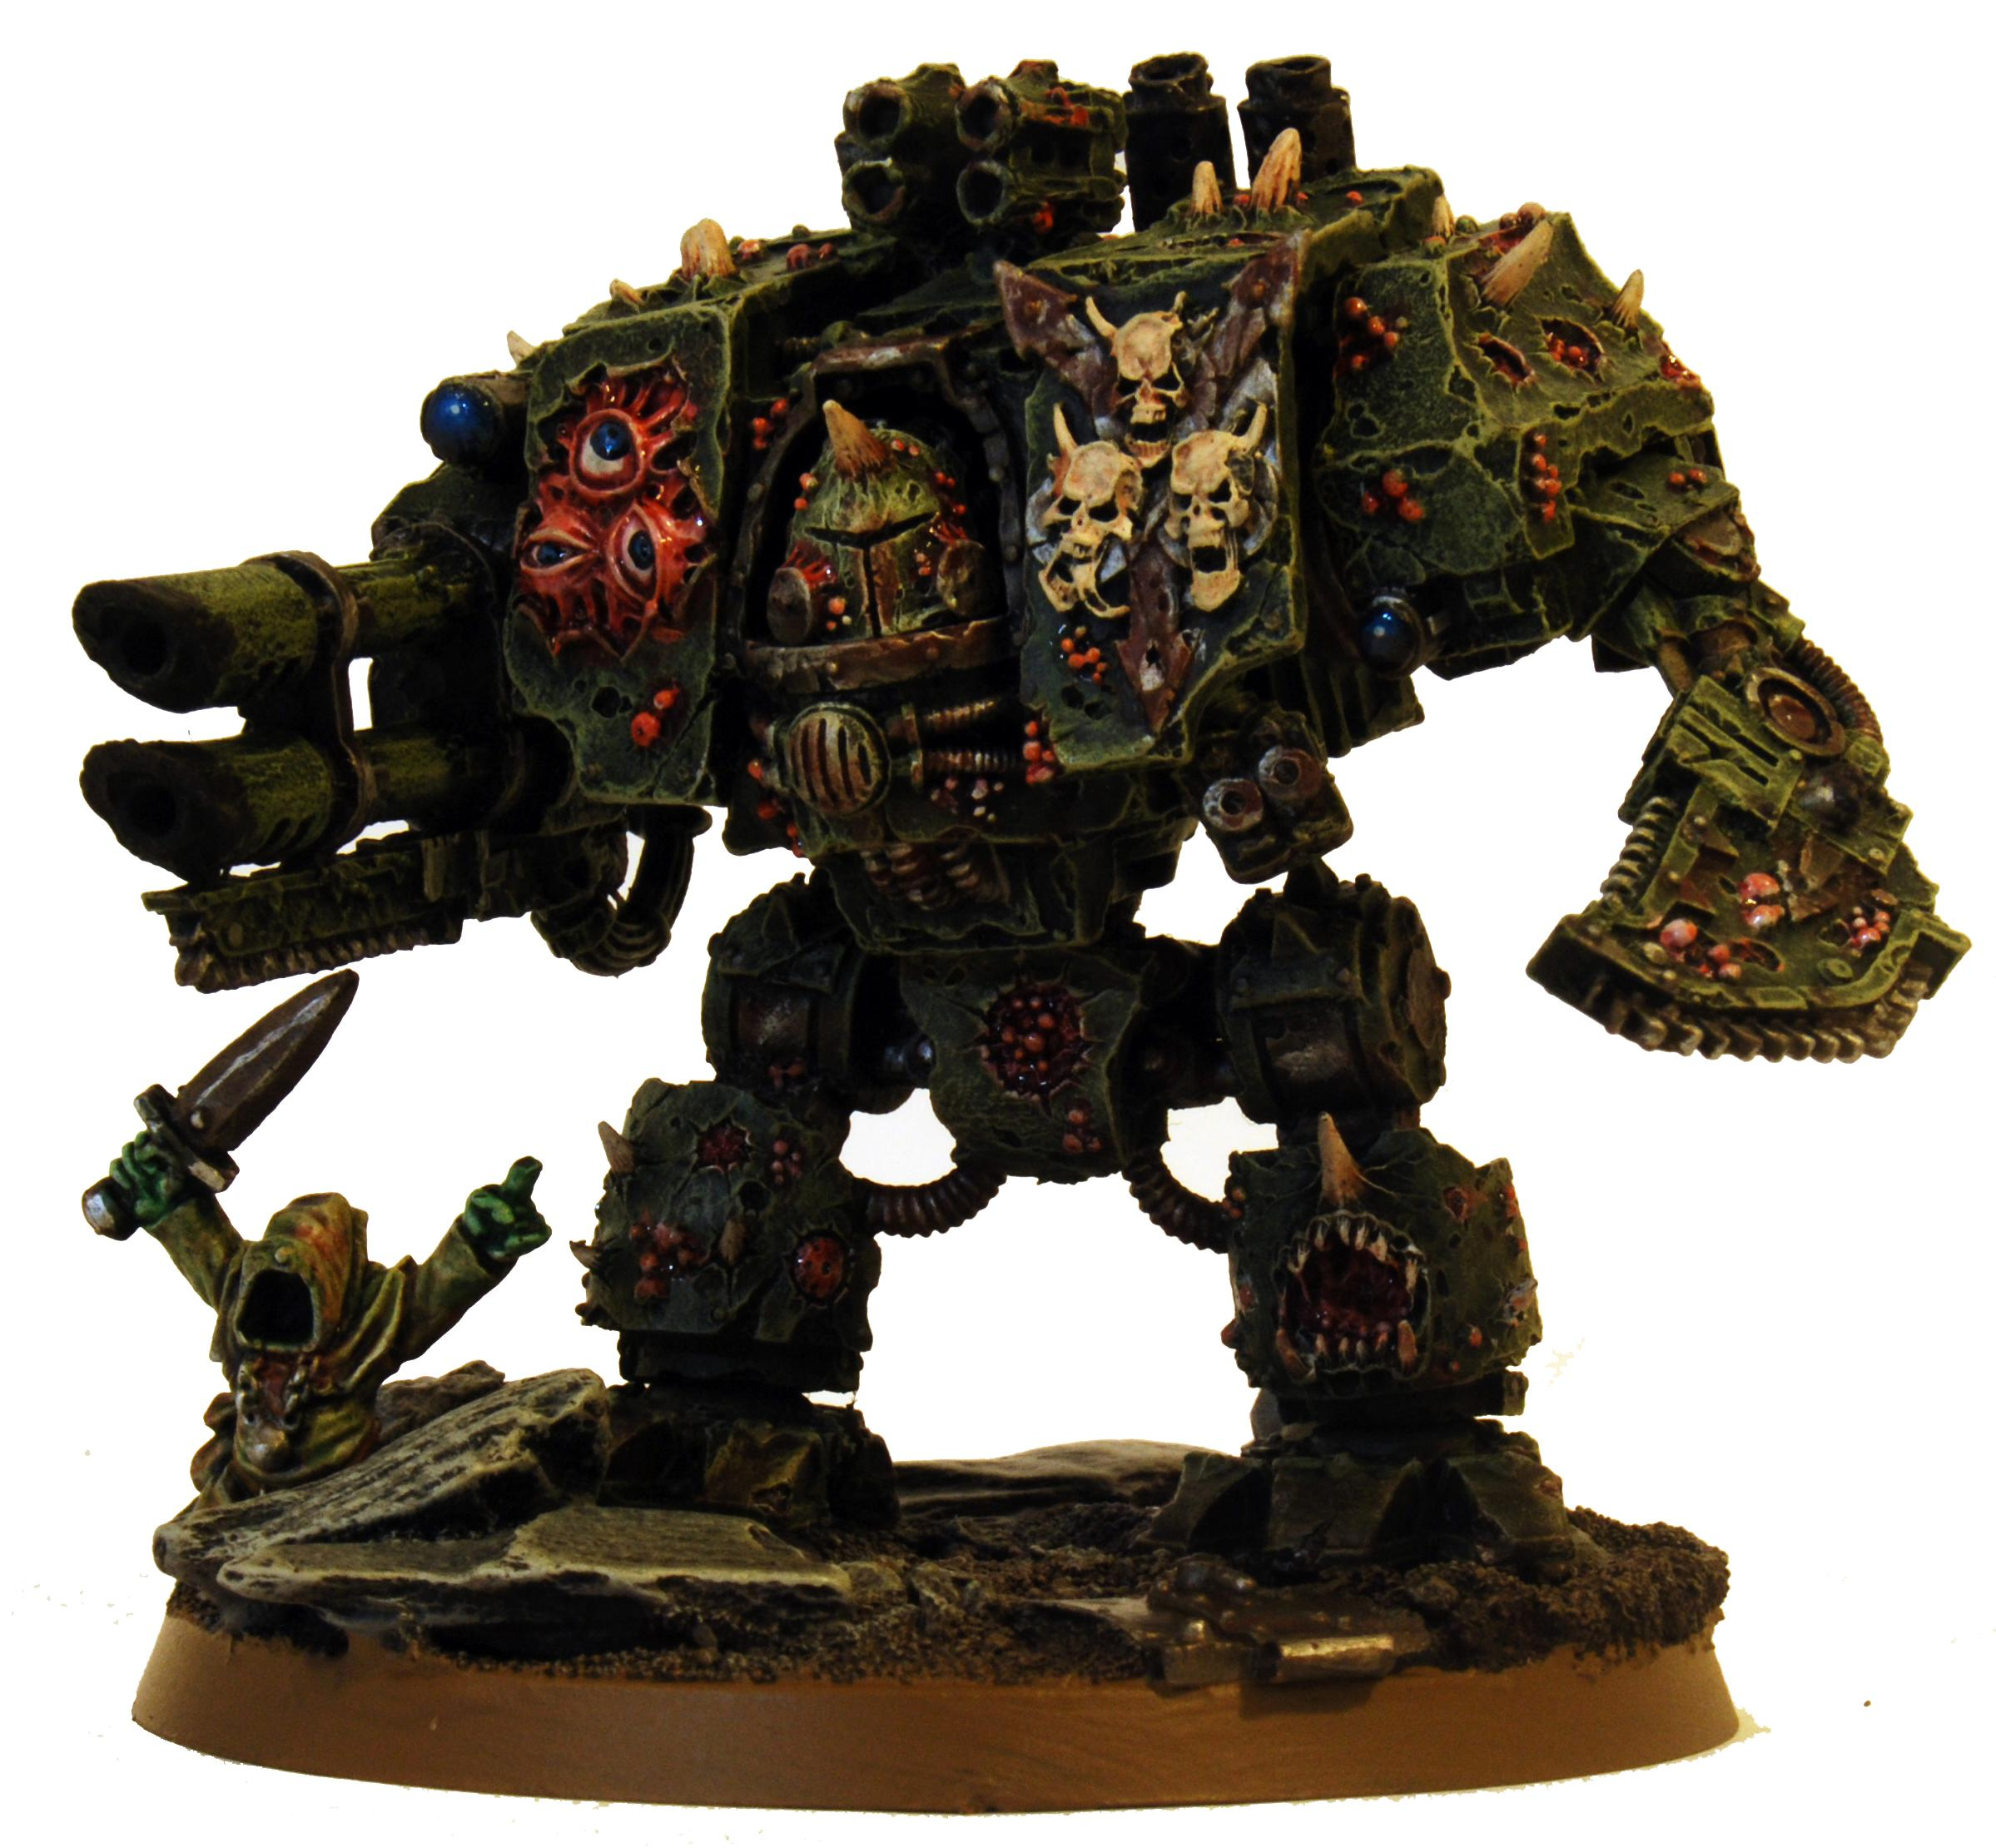 Chaos, Dreadnought, Forge World, Nurgle